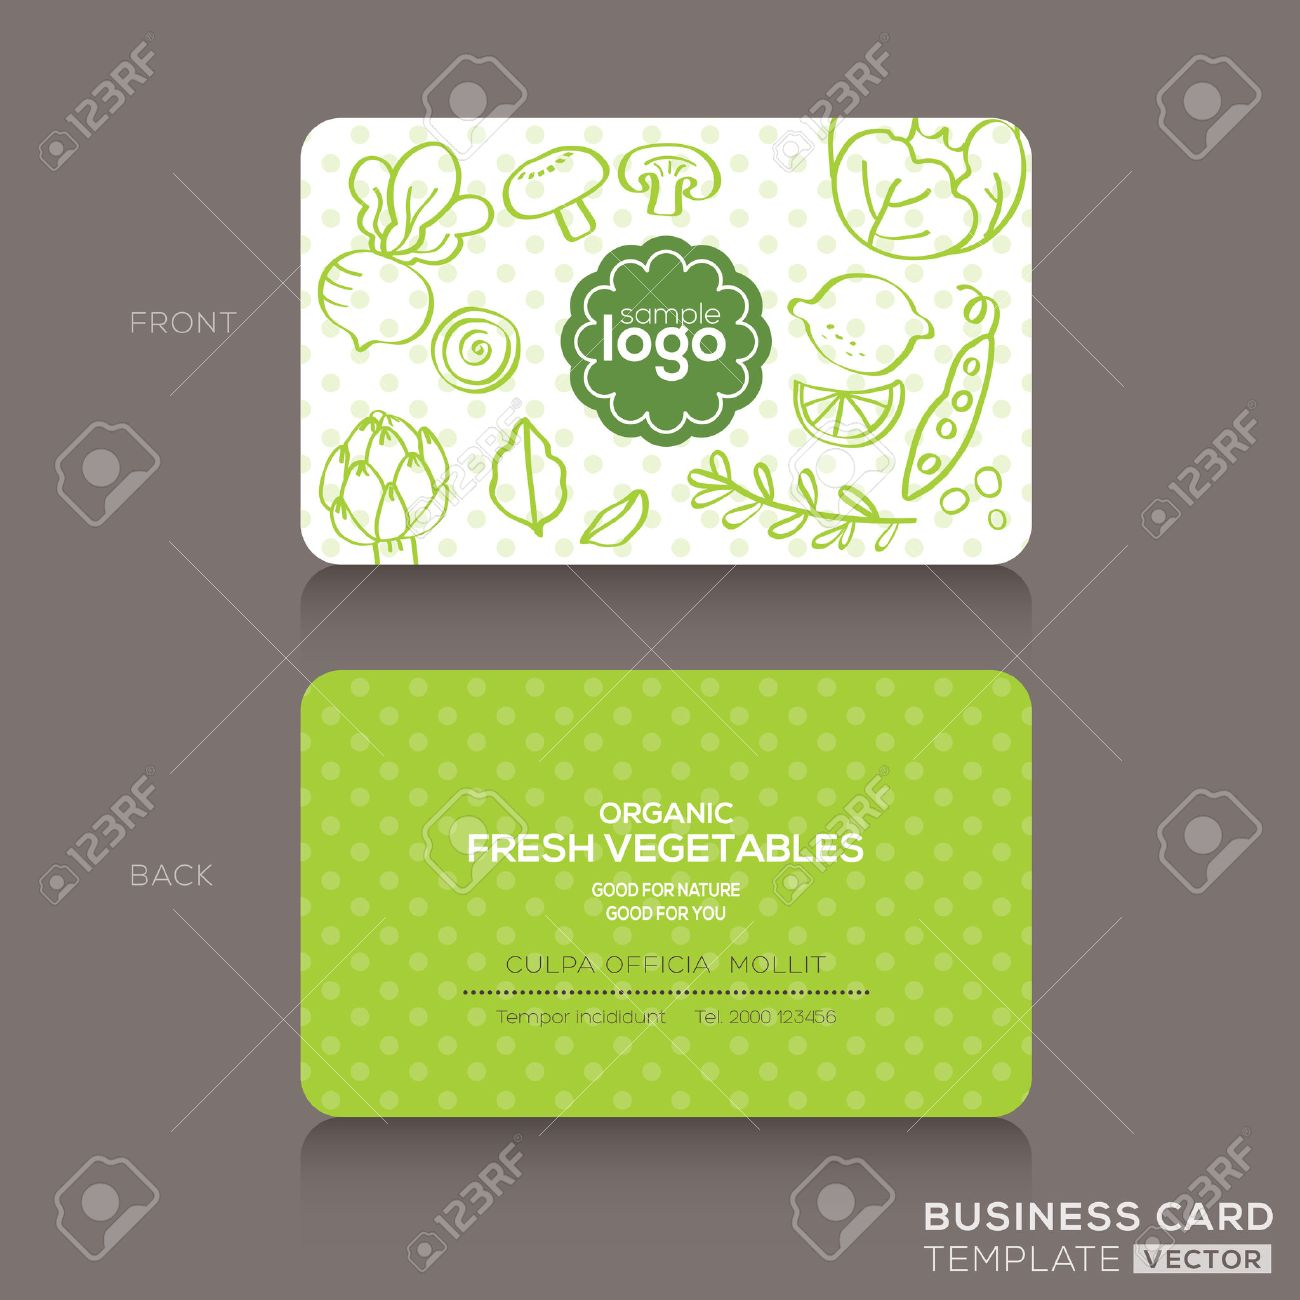 Organic foods shop or vegan cafe business card design template organic foods shop or vegan cafe business card design template with vegetables and fruits doodle background reheart